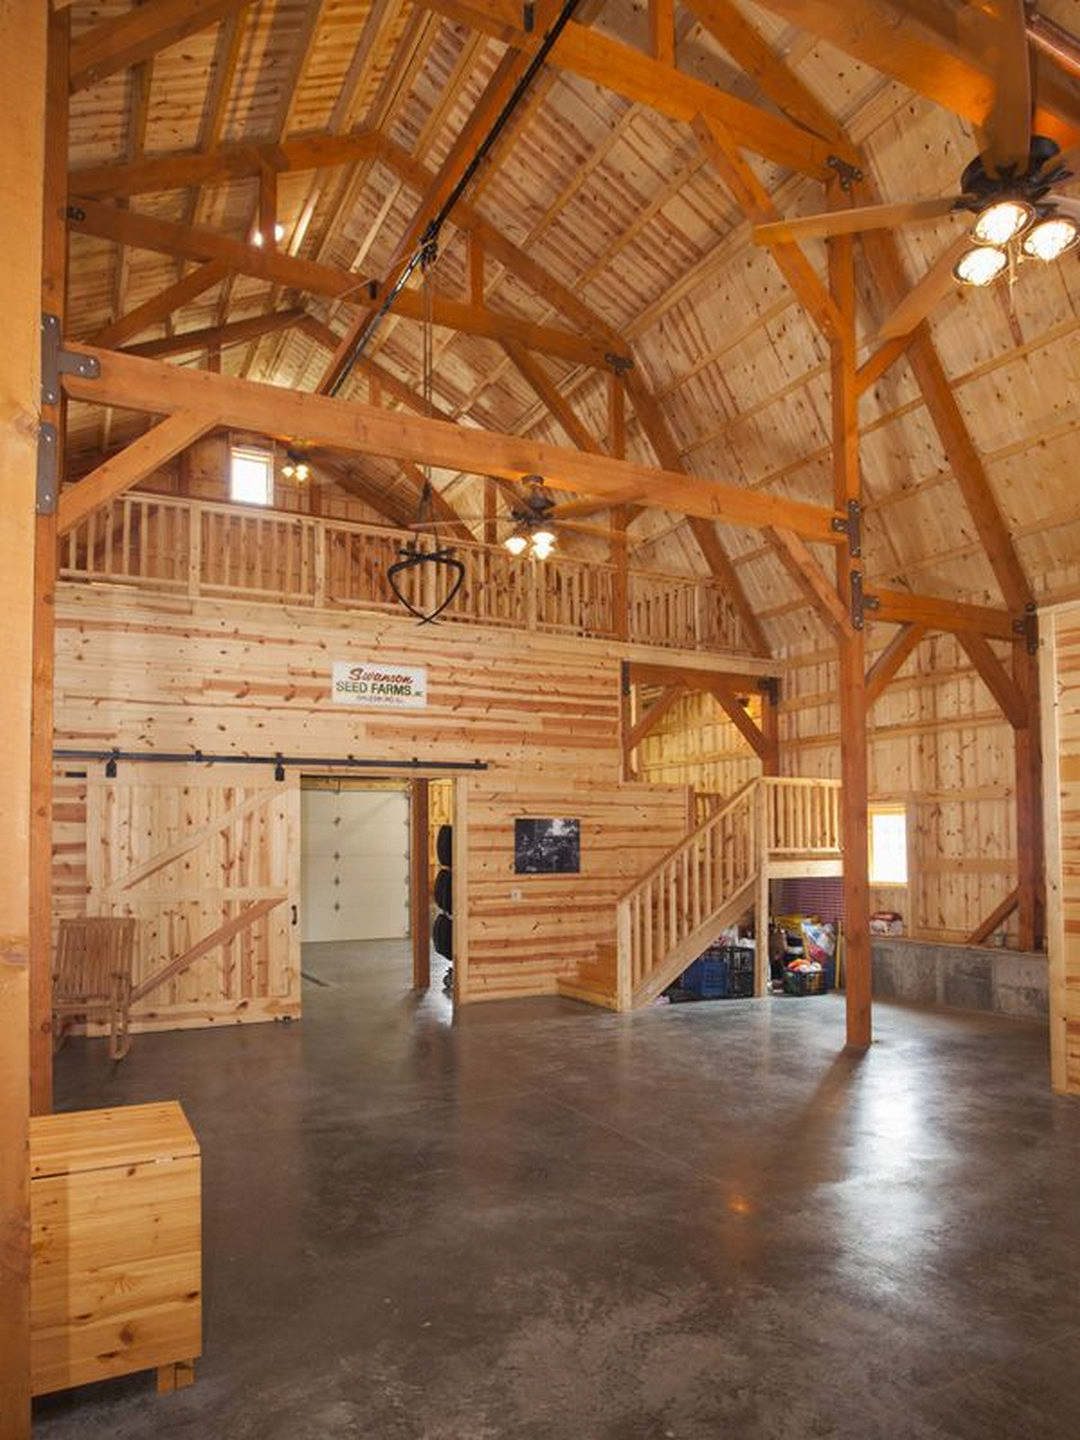 87 barn style interior design ideas barn interiors and for Barn style interior design